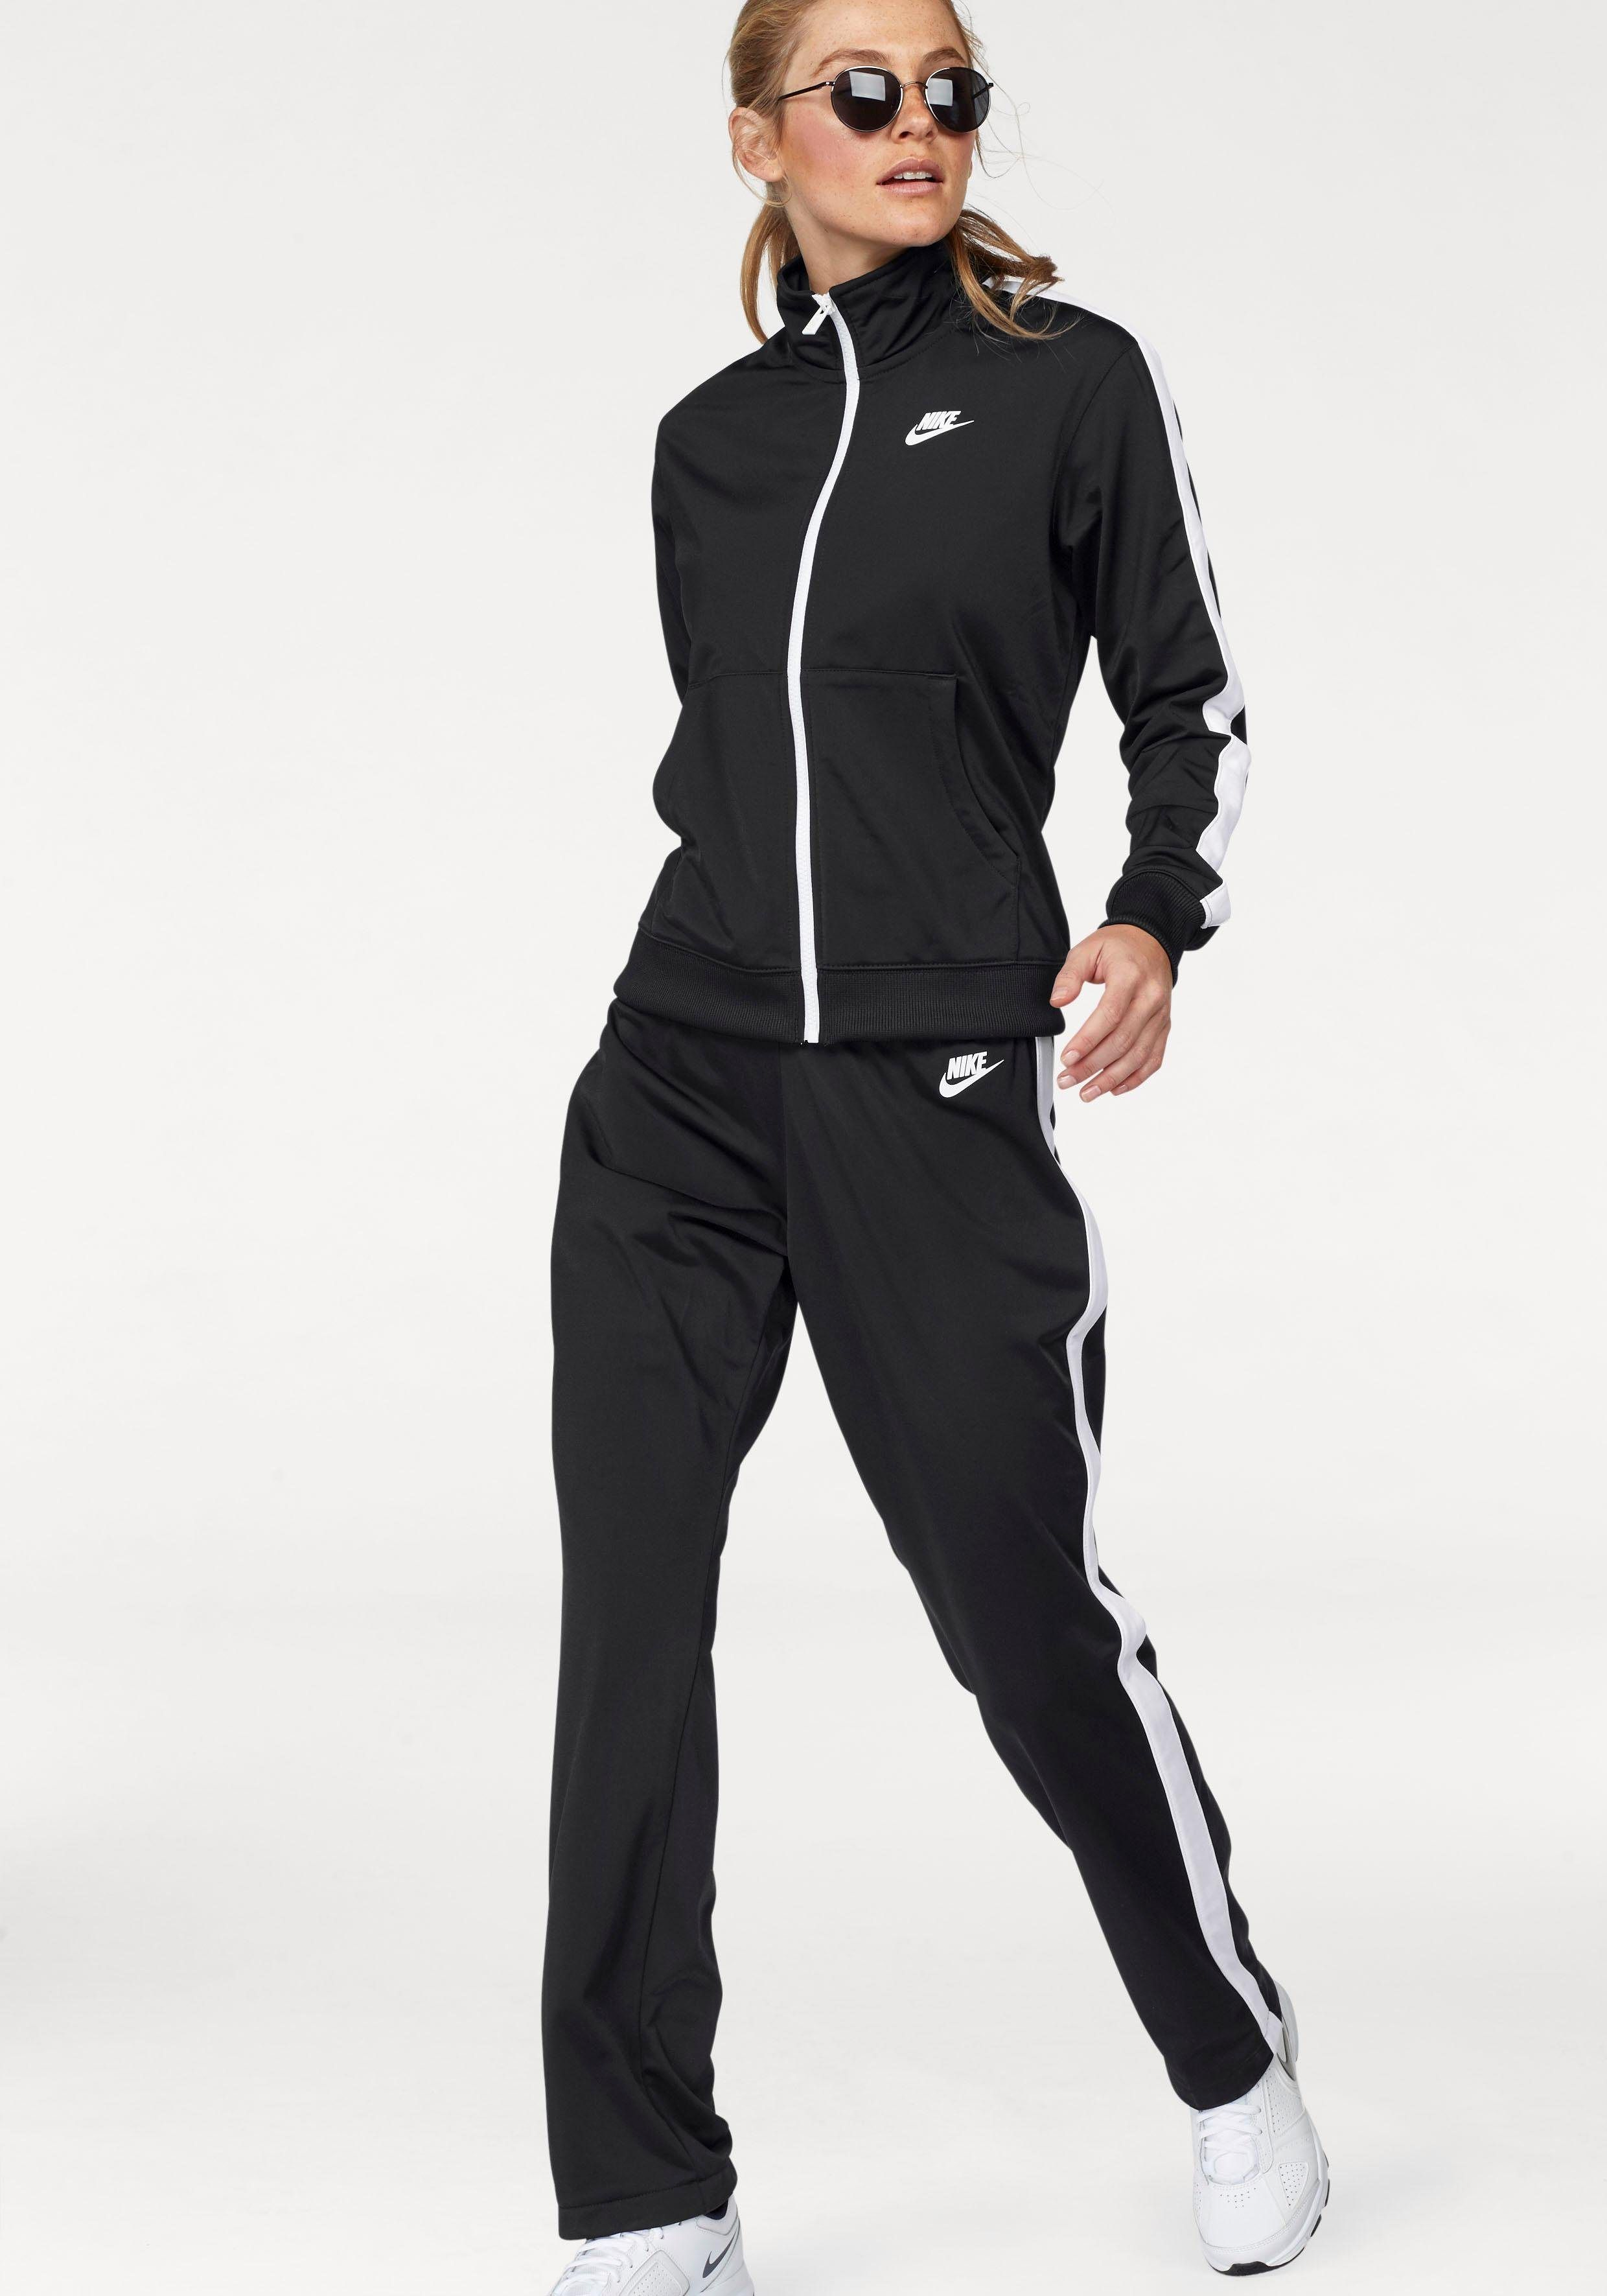 NIKE #Damen #Nike #Sportswear #Trainingsanzug #WOMEN #NSW